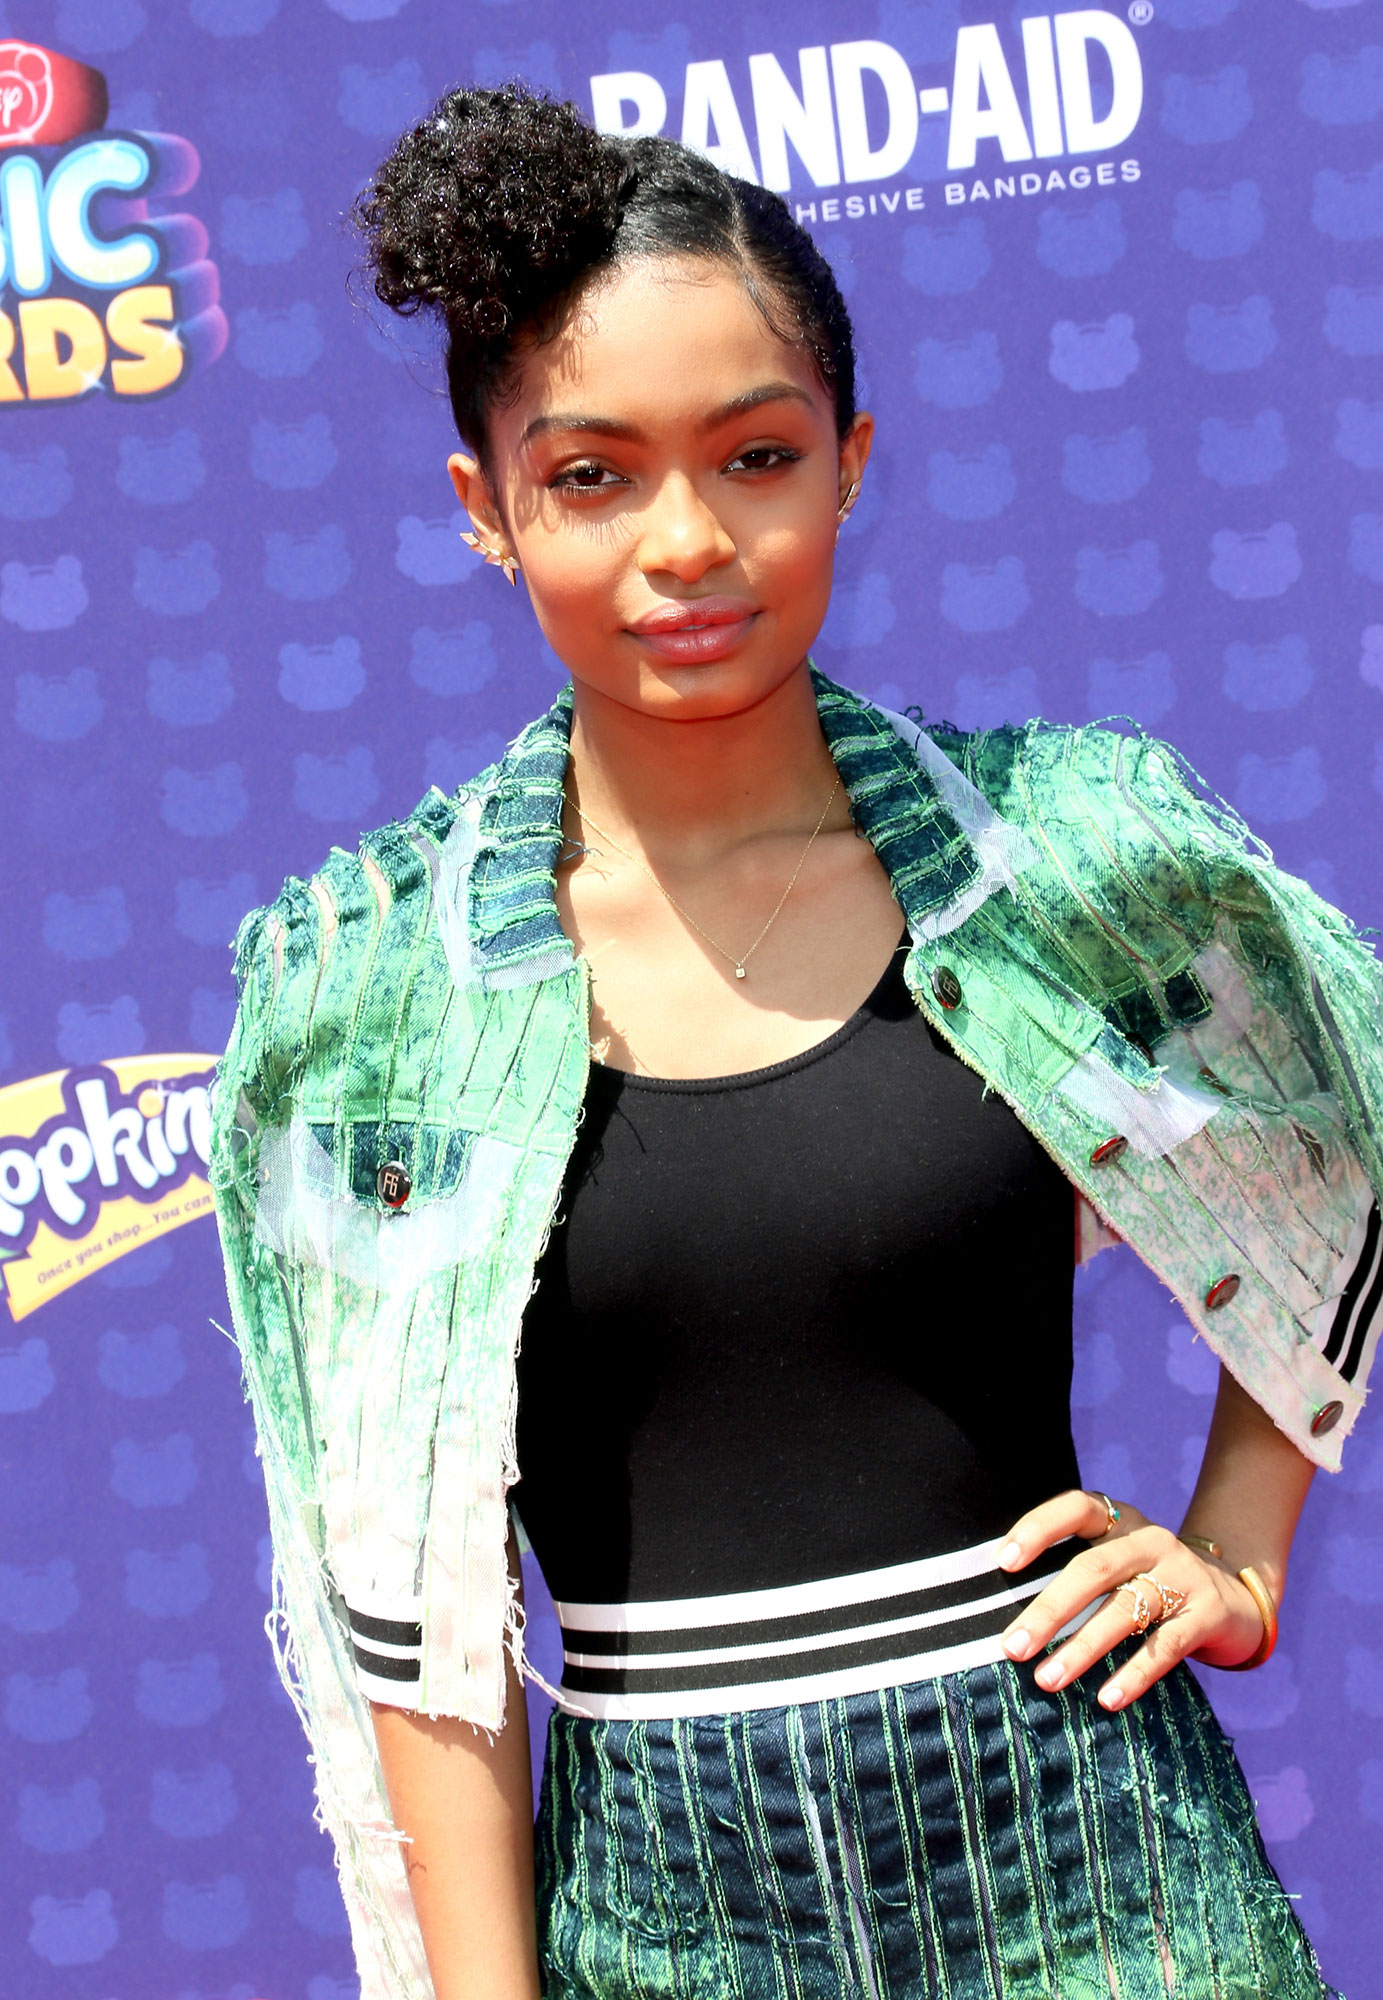 Yara Shahidi - Shahidi is the queen of the poof-like bun, and this asymmetrical, forehead-grazing placement at the 2016 Radio Disney Music Awards gave it a whole new twist.